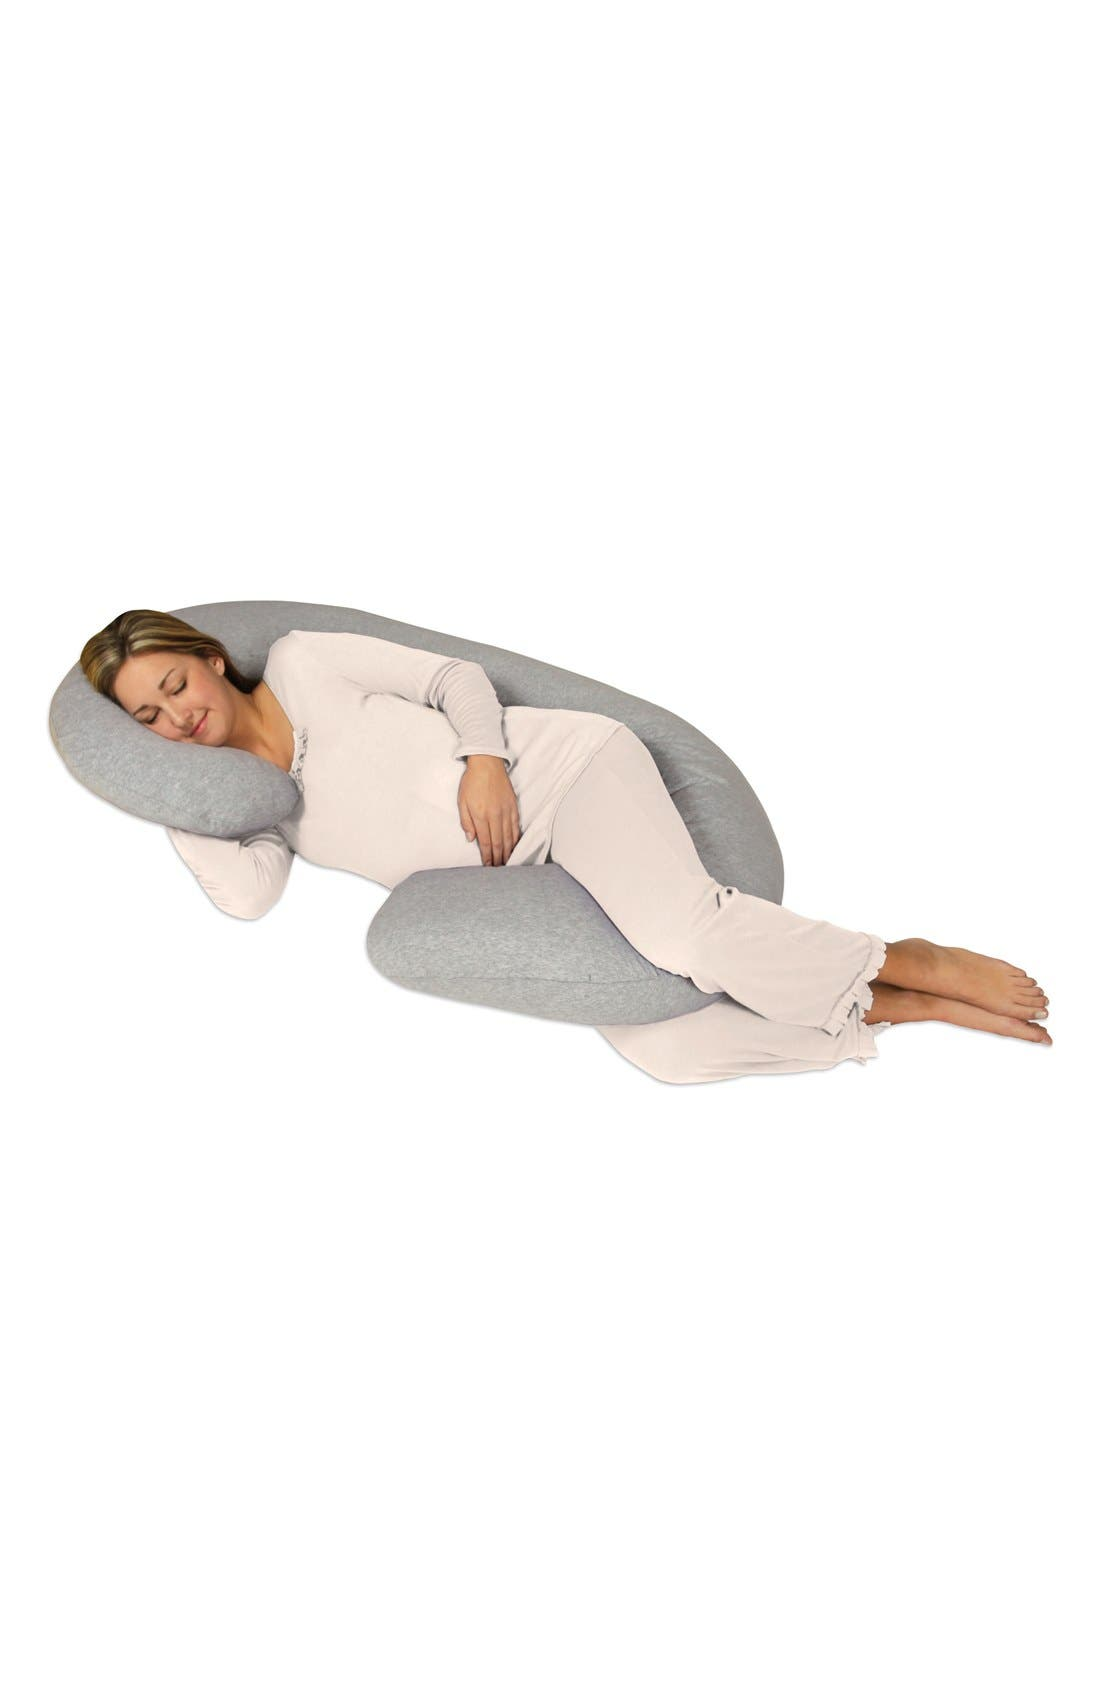 LEACHCO, Snoogle Chic Full Body Pregnancy Support Pillow with Jersey Cover, Alternate thumbnail 3, color, HEATHER GREY